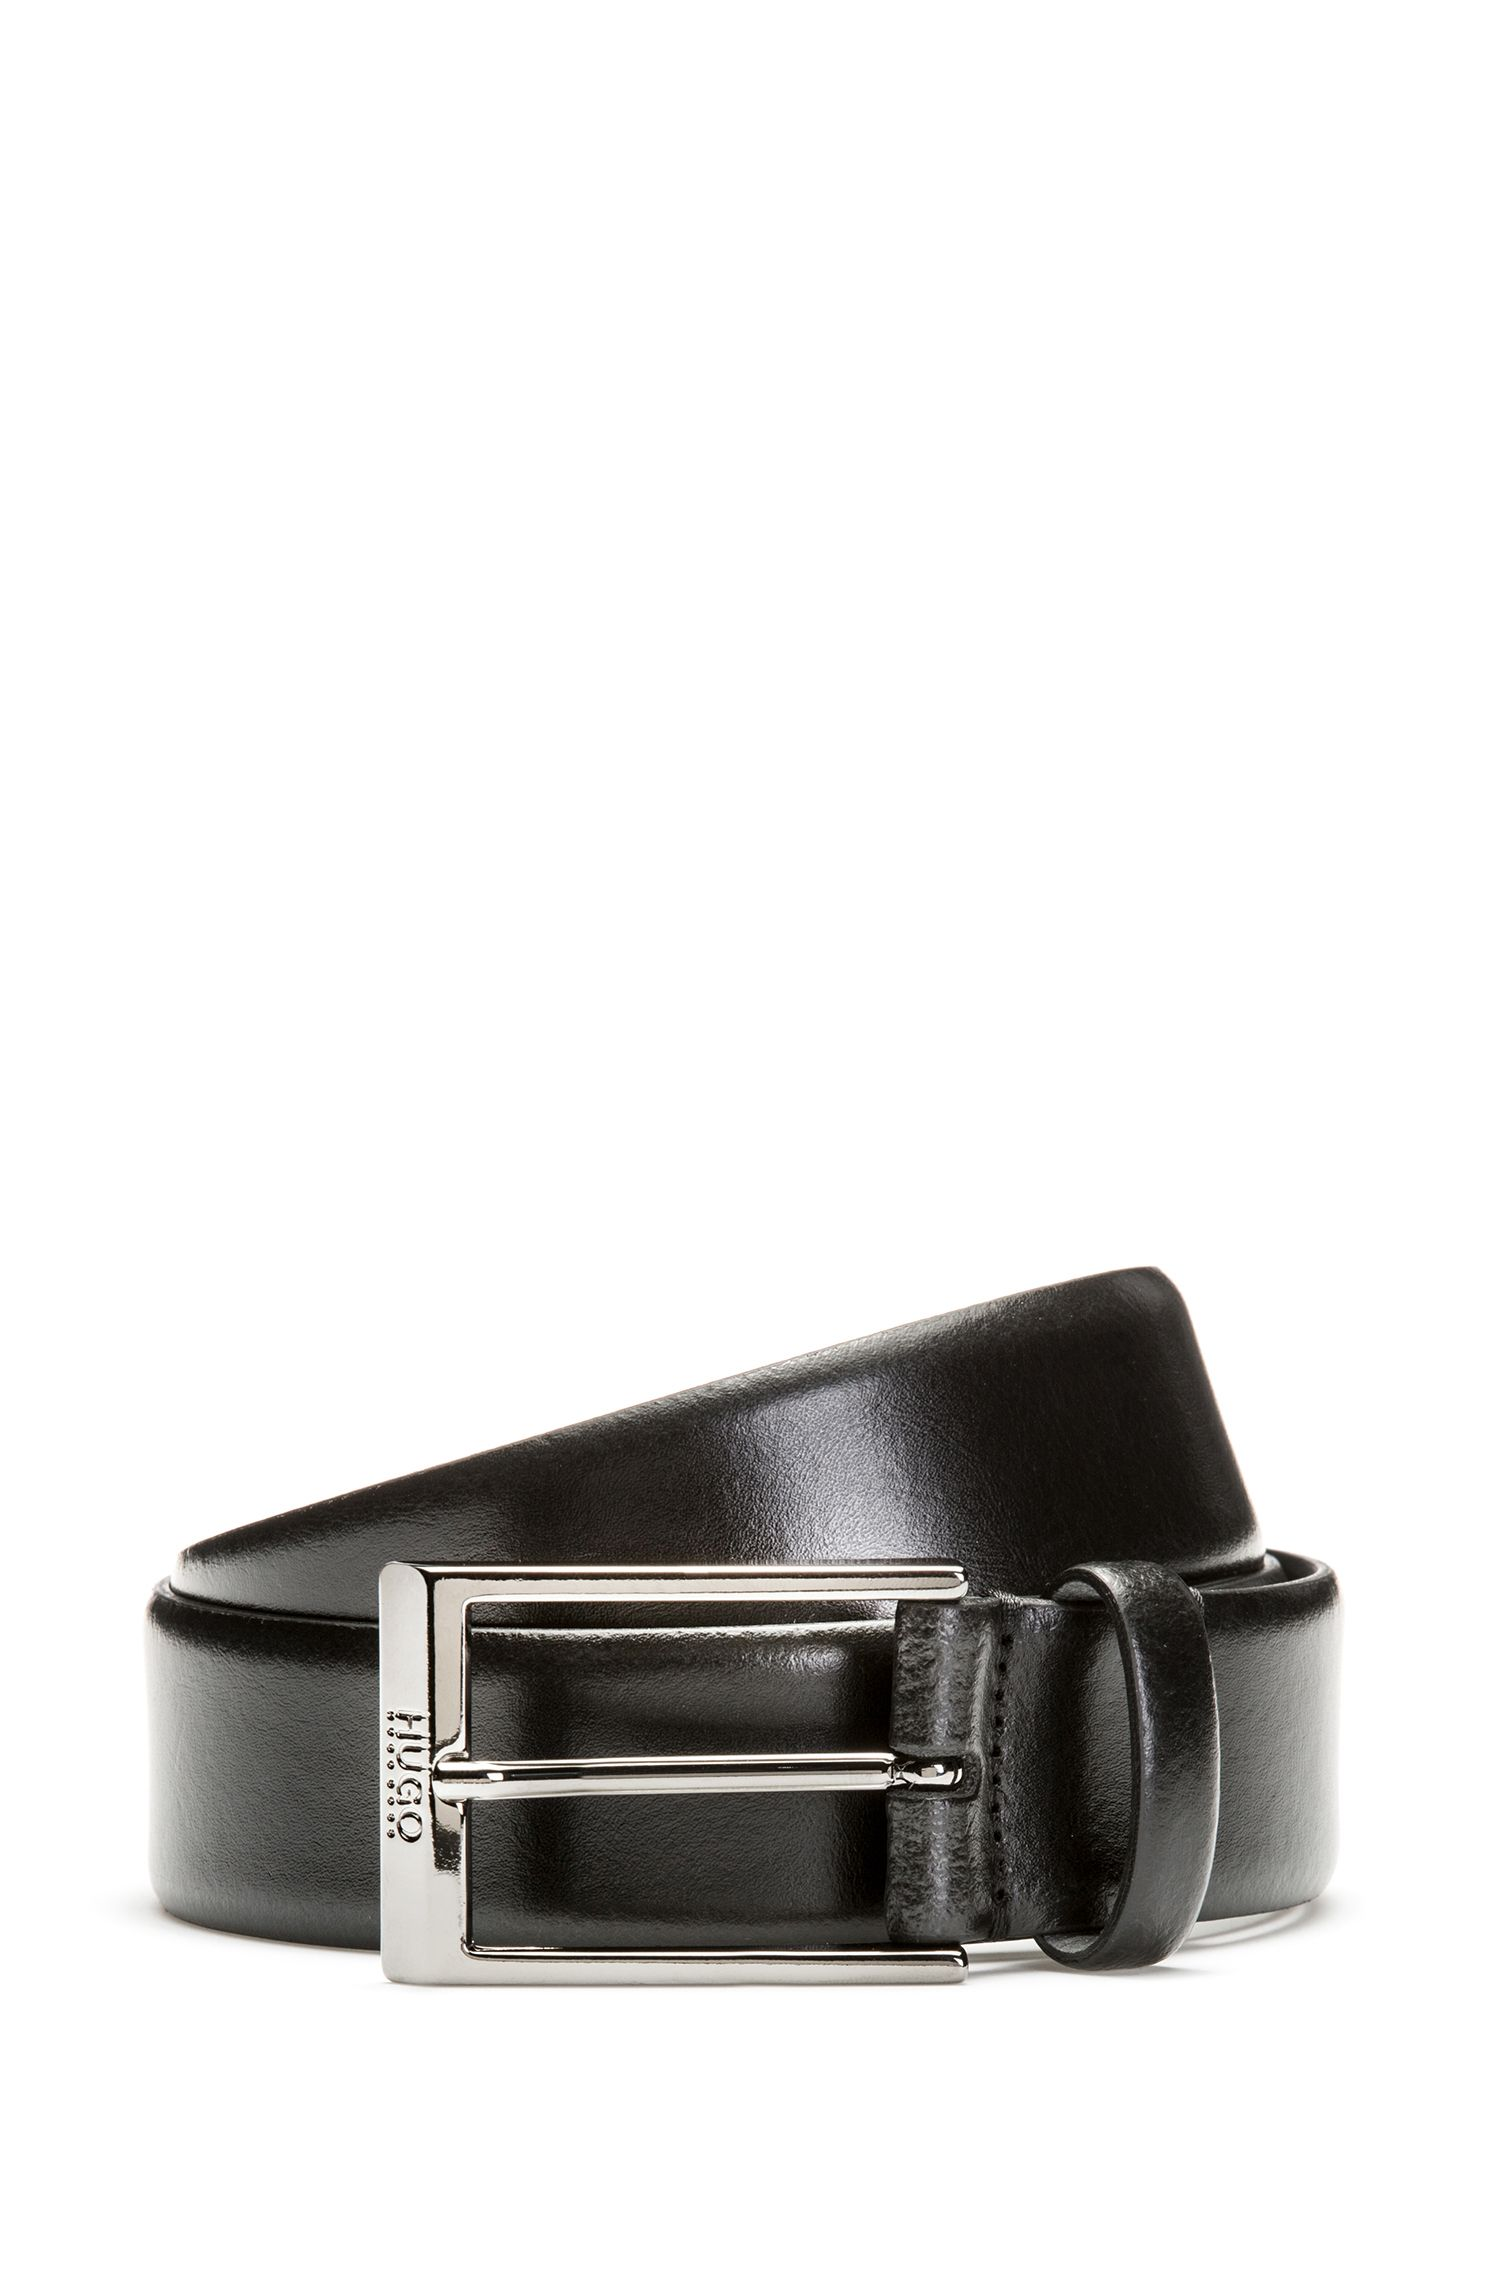 Smooth Italian leather belt with engraved pin buckle